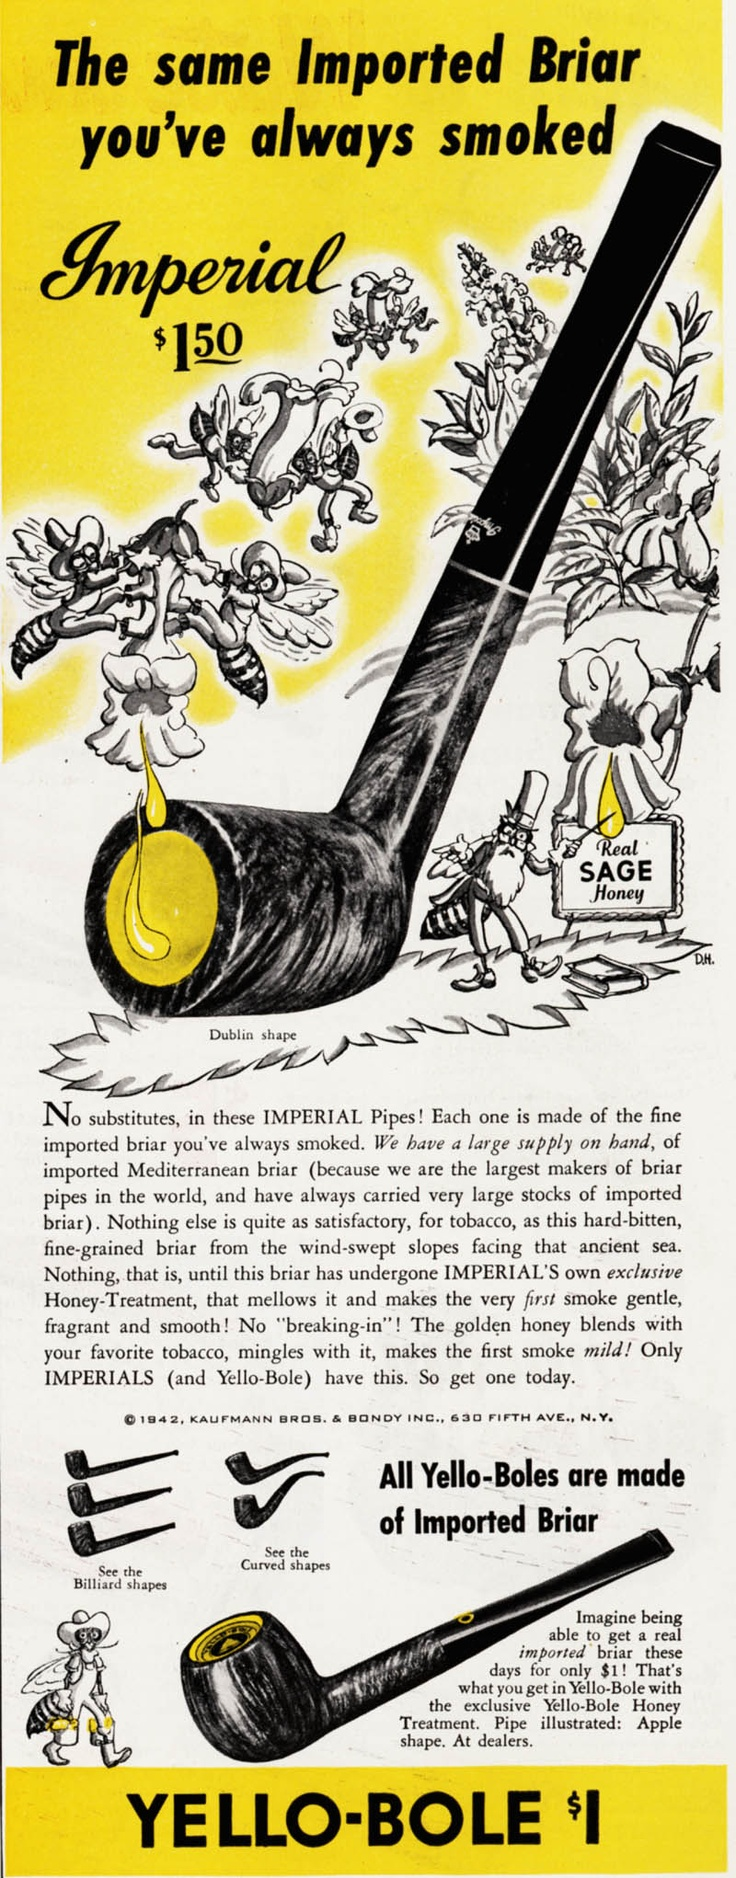 Date: 1942  Brand: Yello-Bole Pipes  Manufacturer: S.M. Frank & Co., Inc.  Campaign: Pipes  Theme: Cigars & Pipes